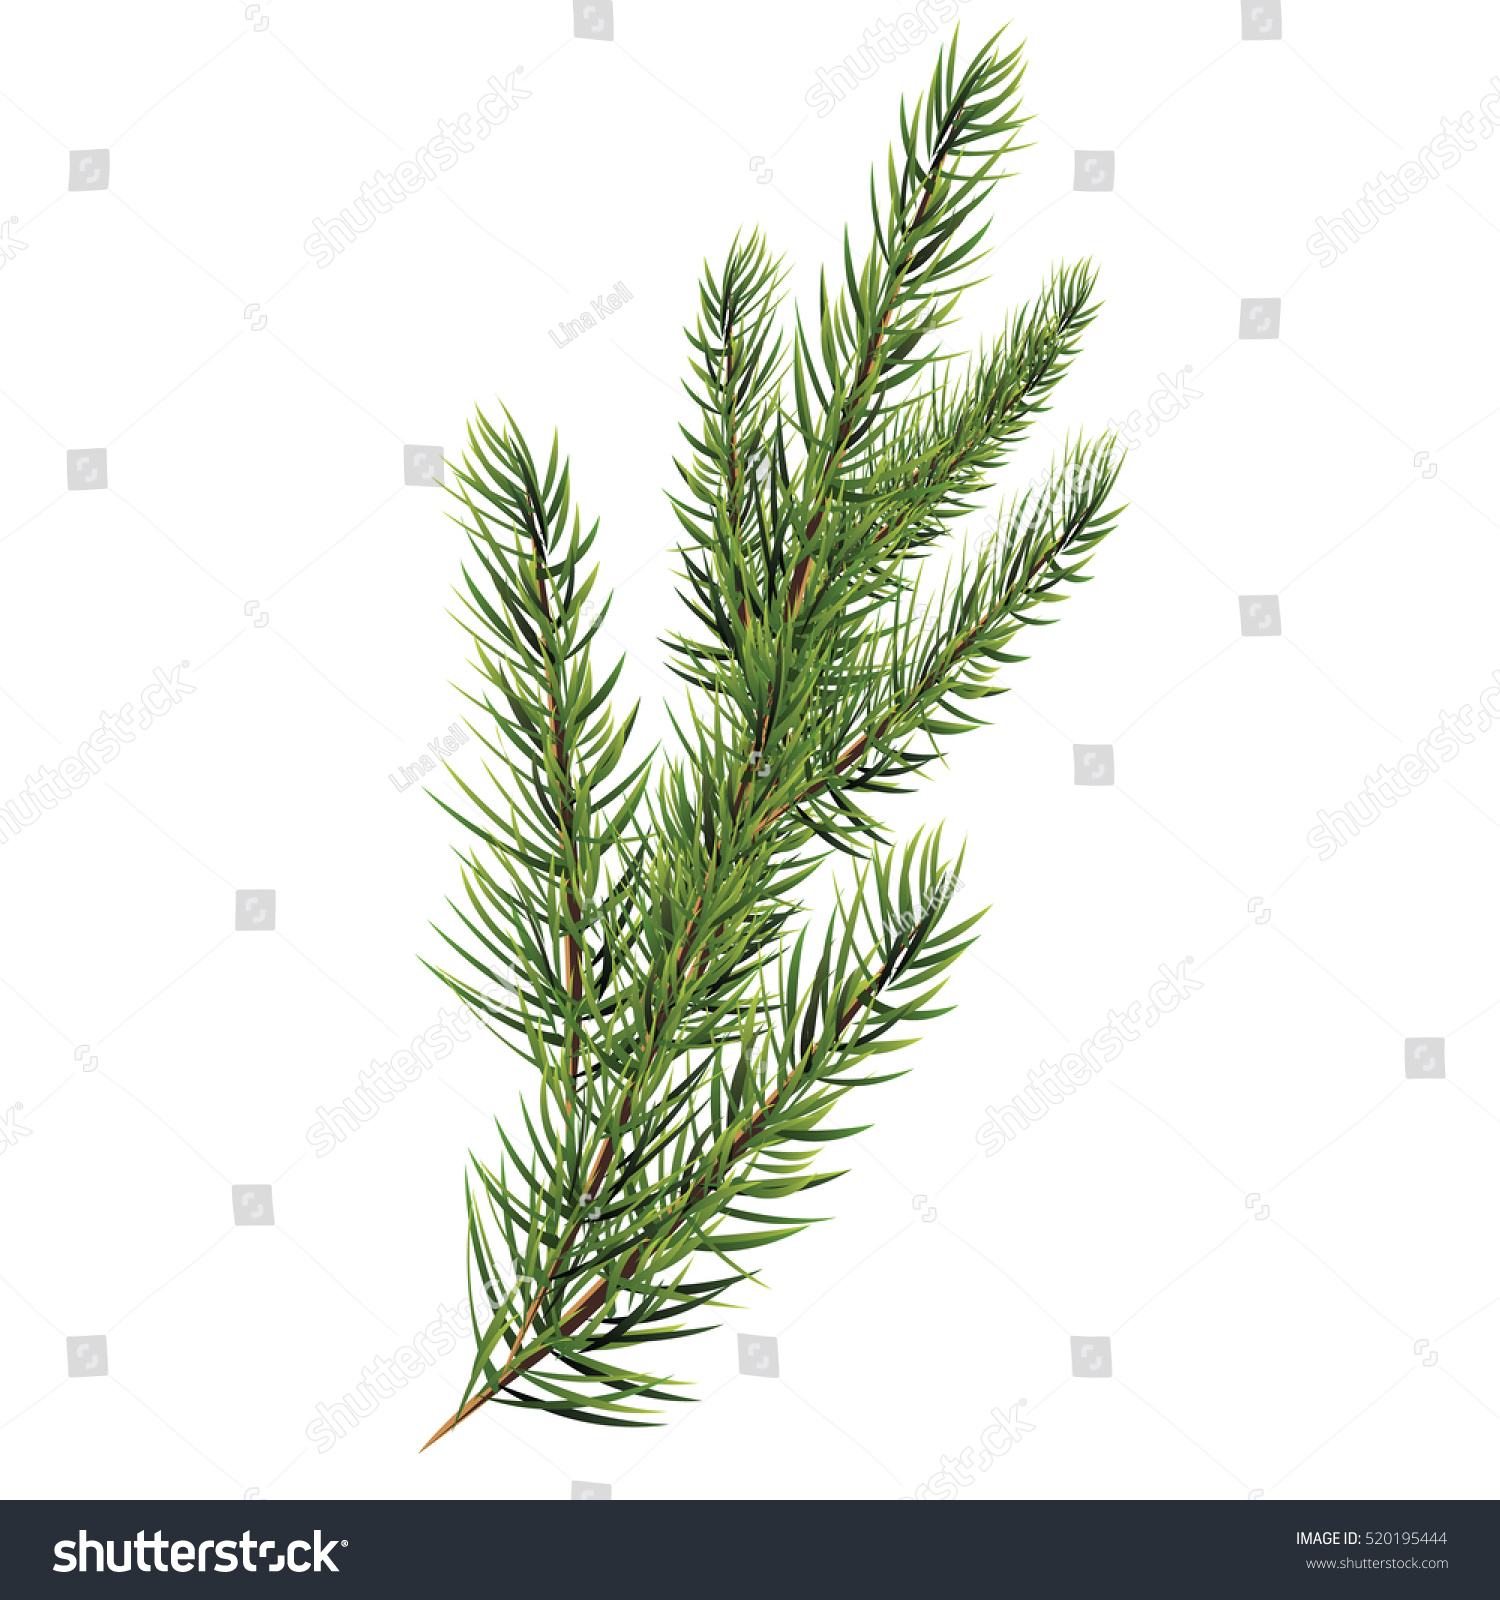 christmas tree branch vector - photo #15